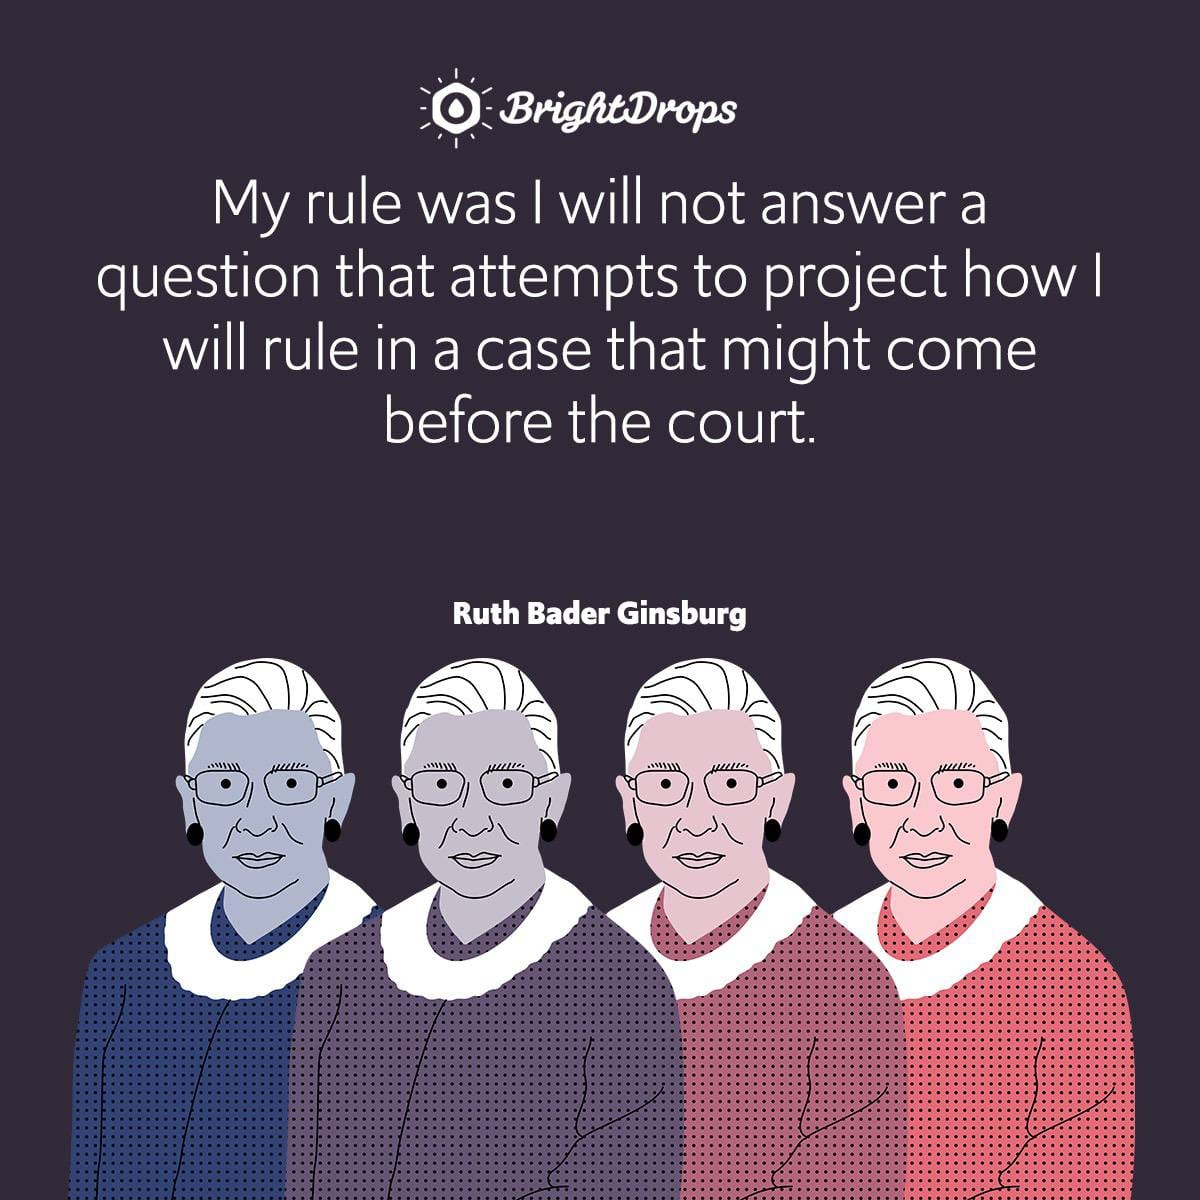 My rule was I will not answer a question that attempts to project how I will rule in a case that might come before the court.